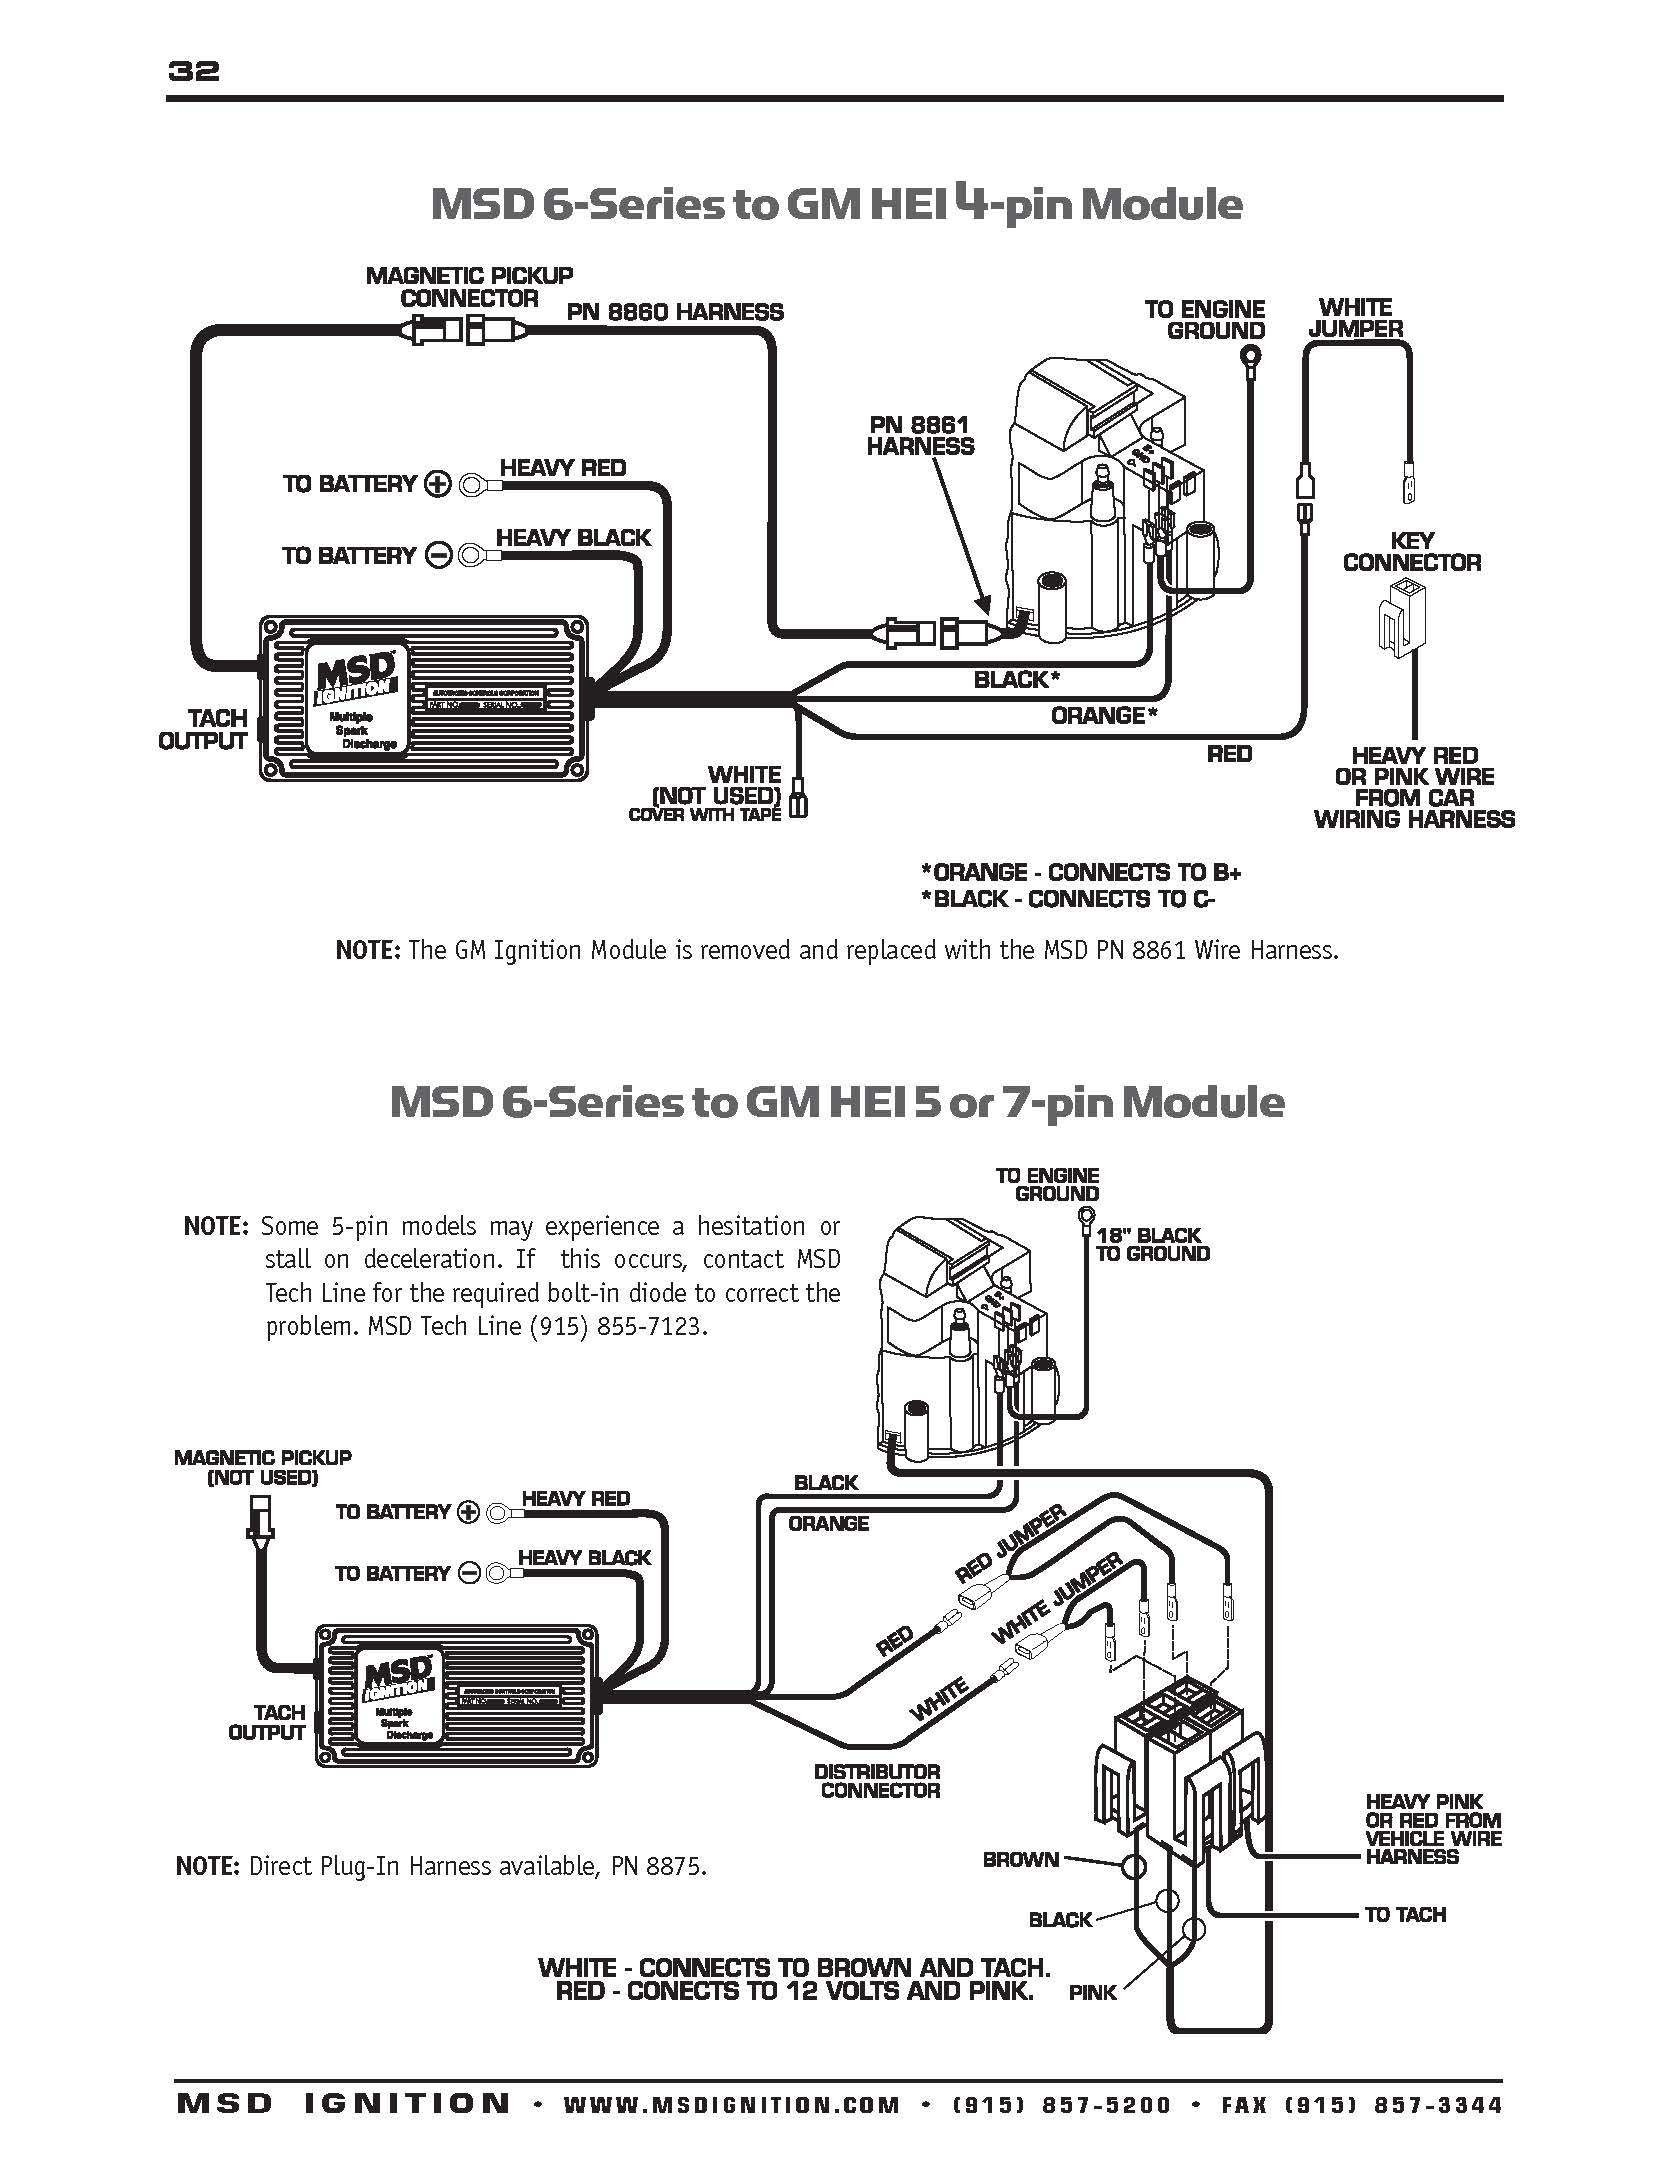 350 chevy hei ignition wiring diagram 350 chevy msd ignition wiring diagram